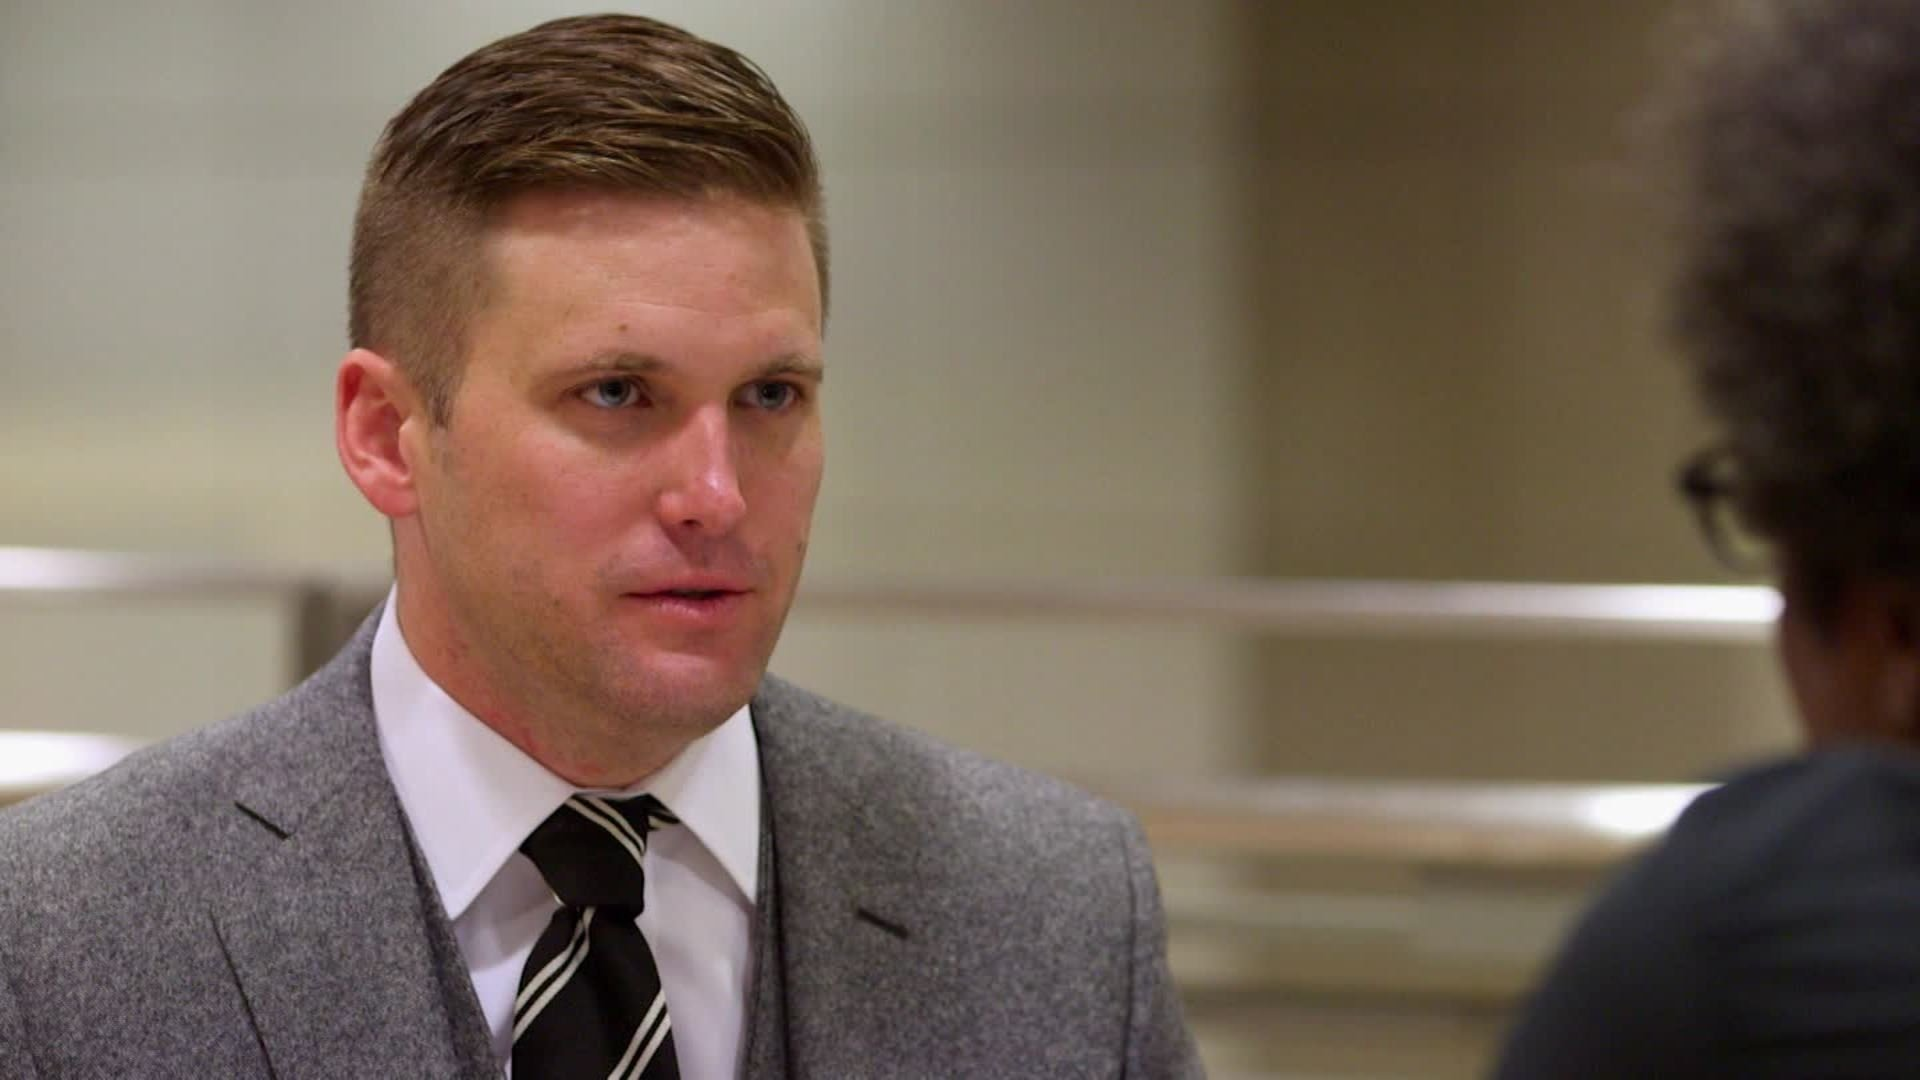 The University of Florida in Gainesville is bracing for a day of protests Thursday when white supremacist Richard Spencer arrives to deliver a speech on his racist views on campus. (CNN photo)